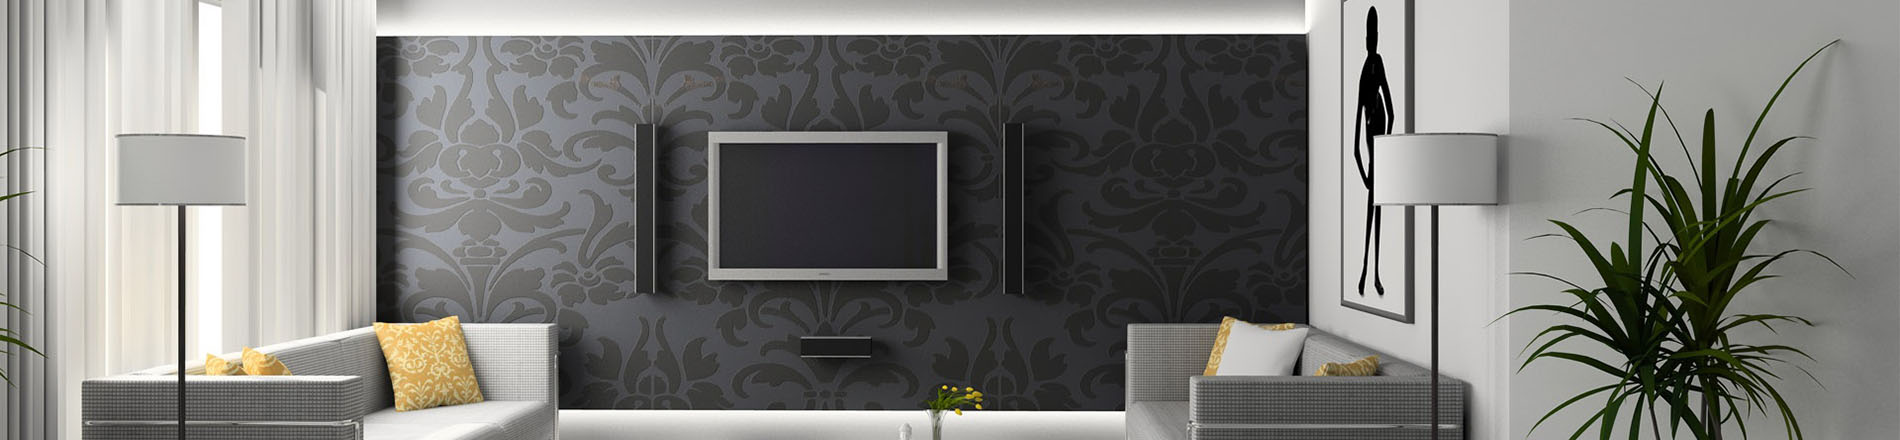 kabel tv stadtbetriebe mariazell gmbh. Black Bedroom Furniture Sets. Home Design Ideas